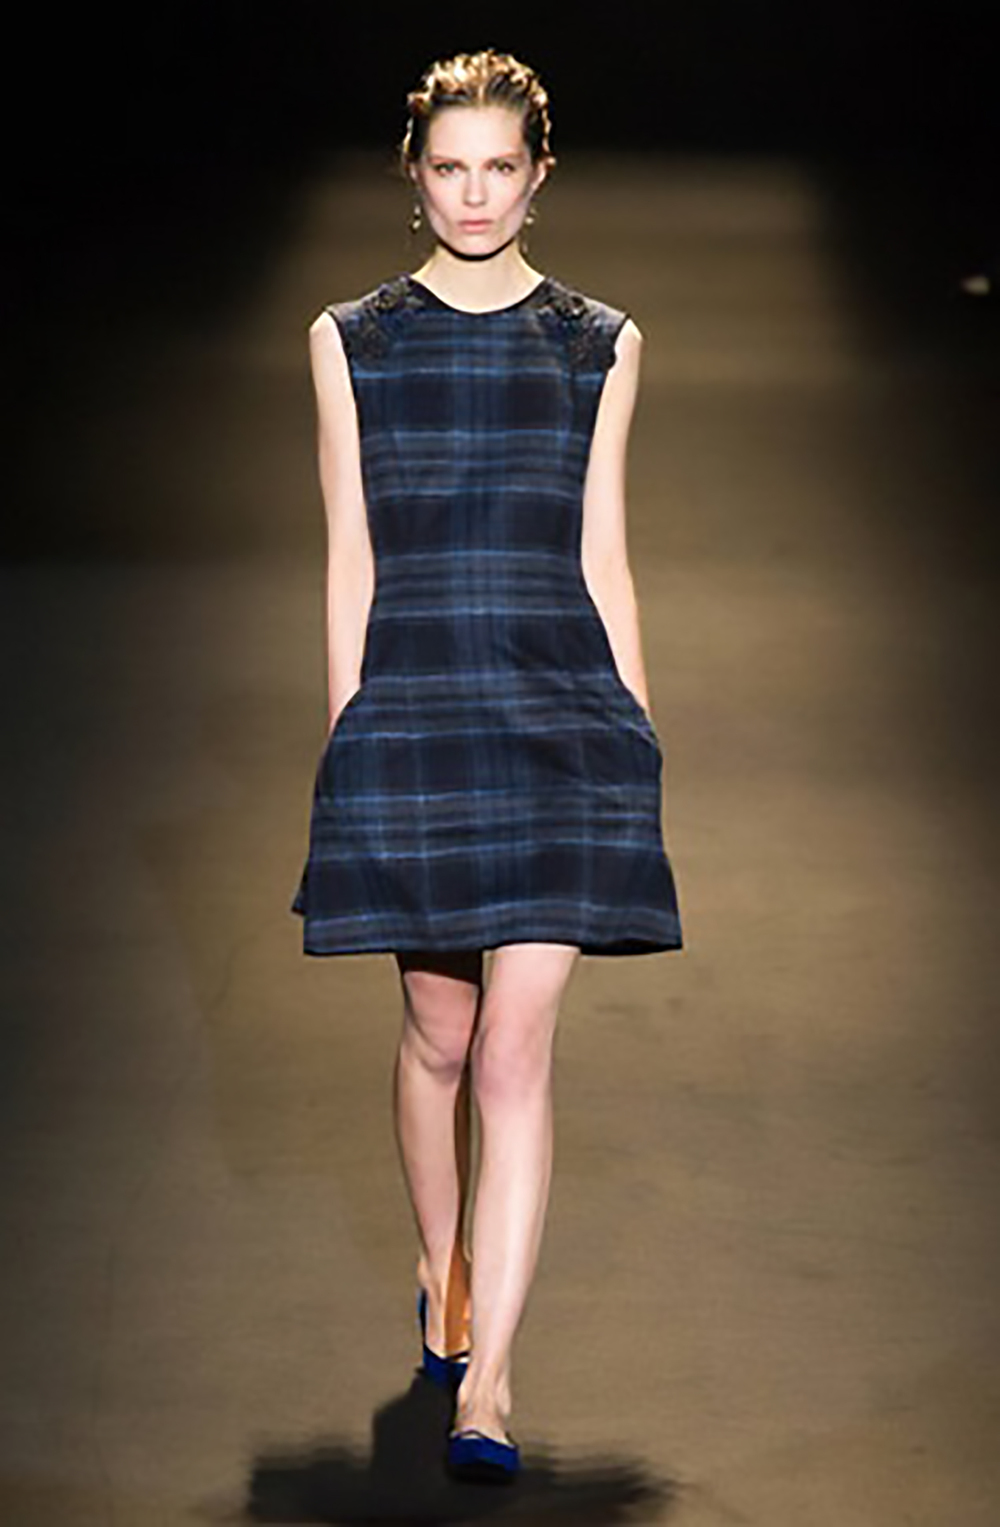 elle.com plaid runway 2013 alberta ferretti mad for plaid 1500.jpg